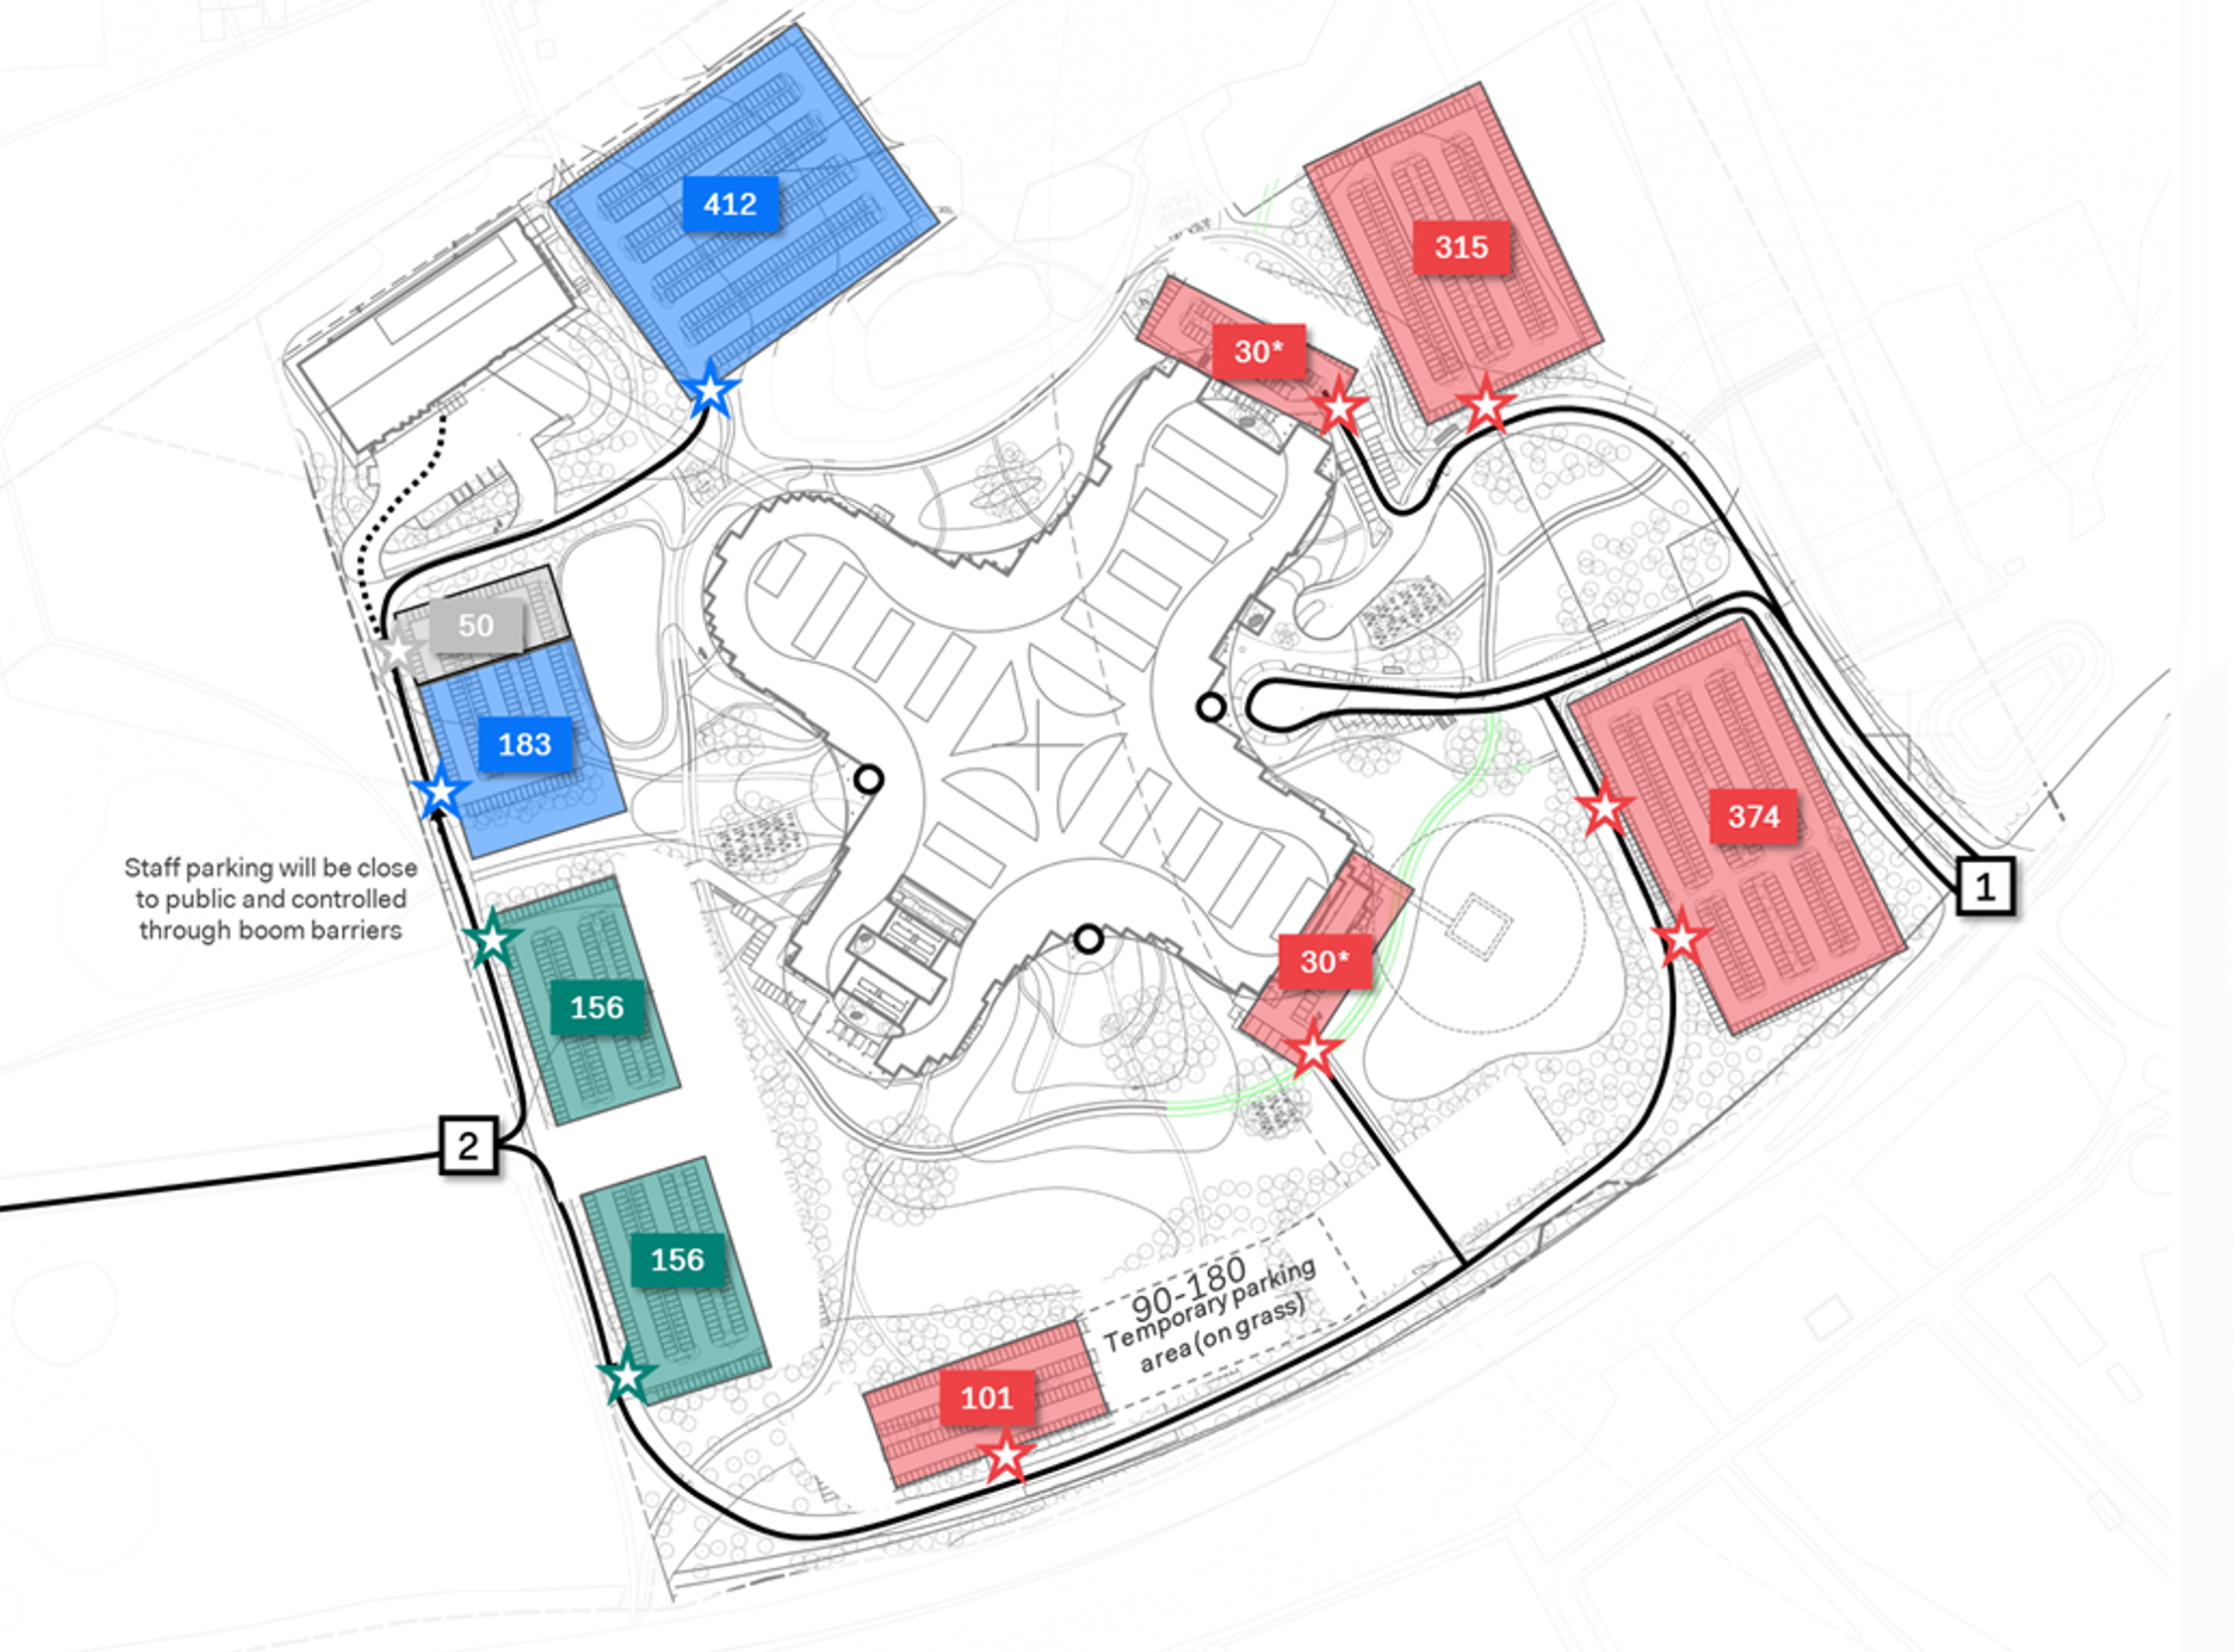 Systematica_Zealand Hospital_Parking Distribution